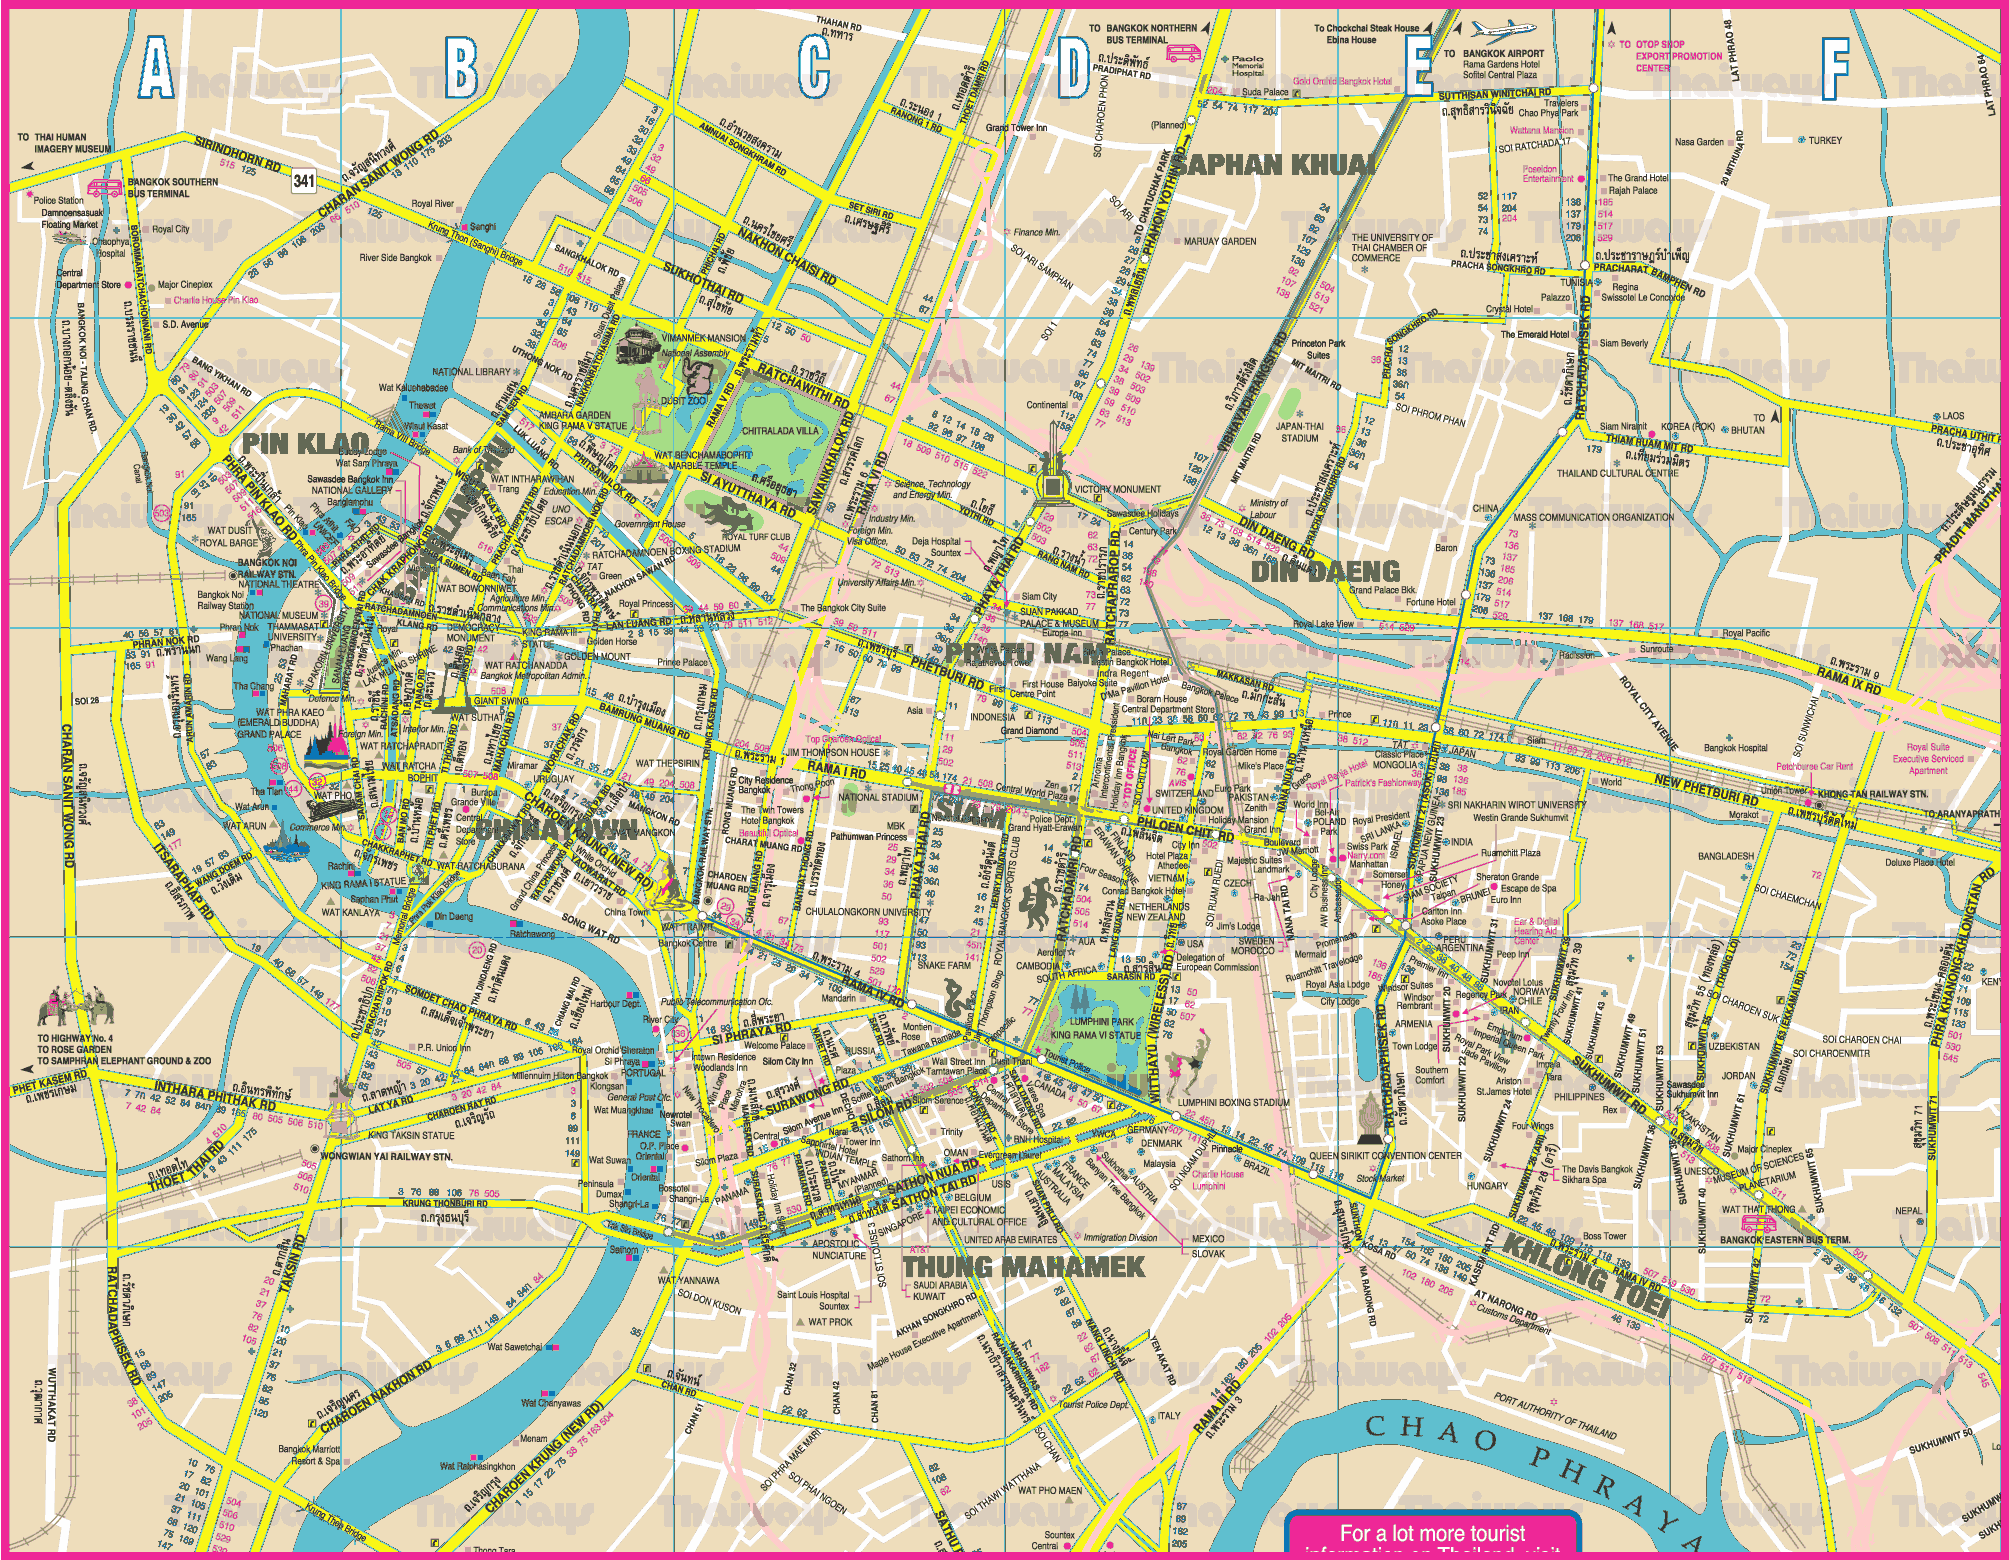 Maps Bangkok - Bangkok tourist maps